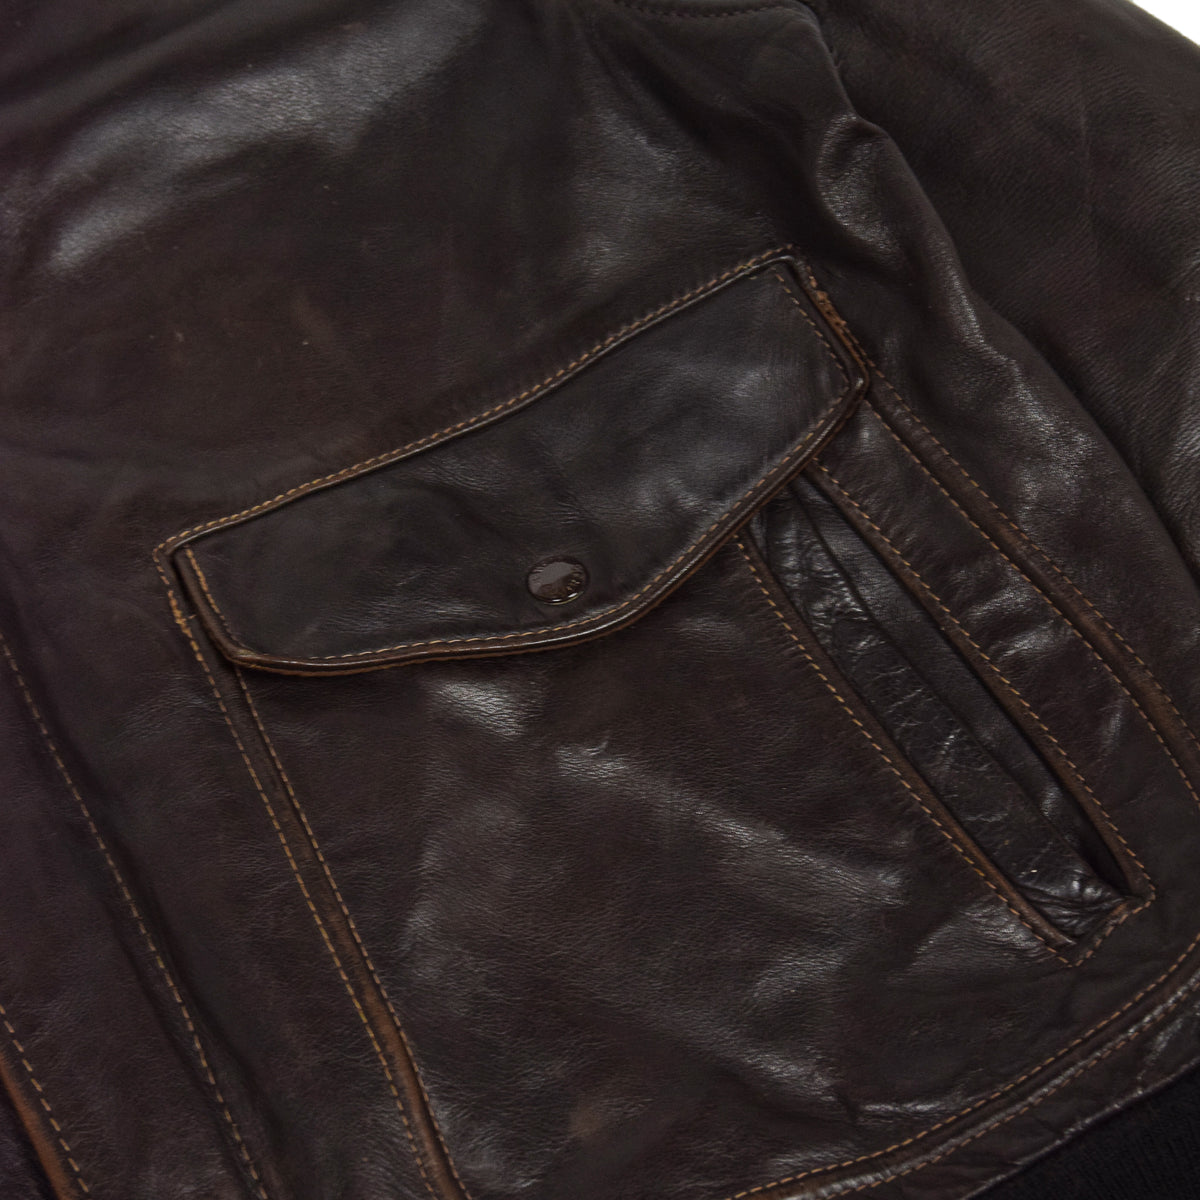 Vintage 80s A-2 Schott Brown Leather Flight Bomber Flying Jacket Made in USA M lower pocket